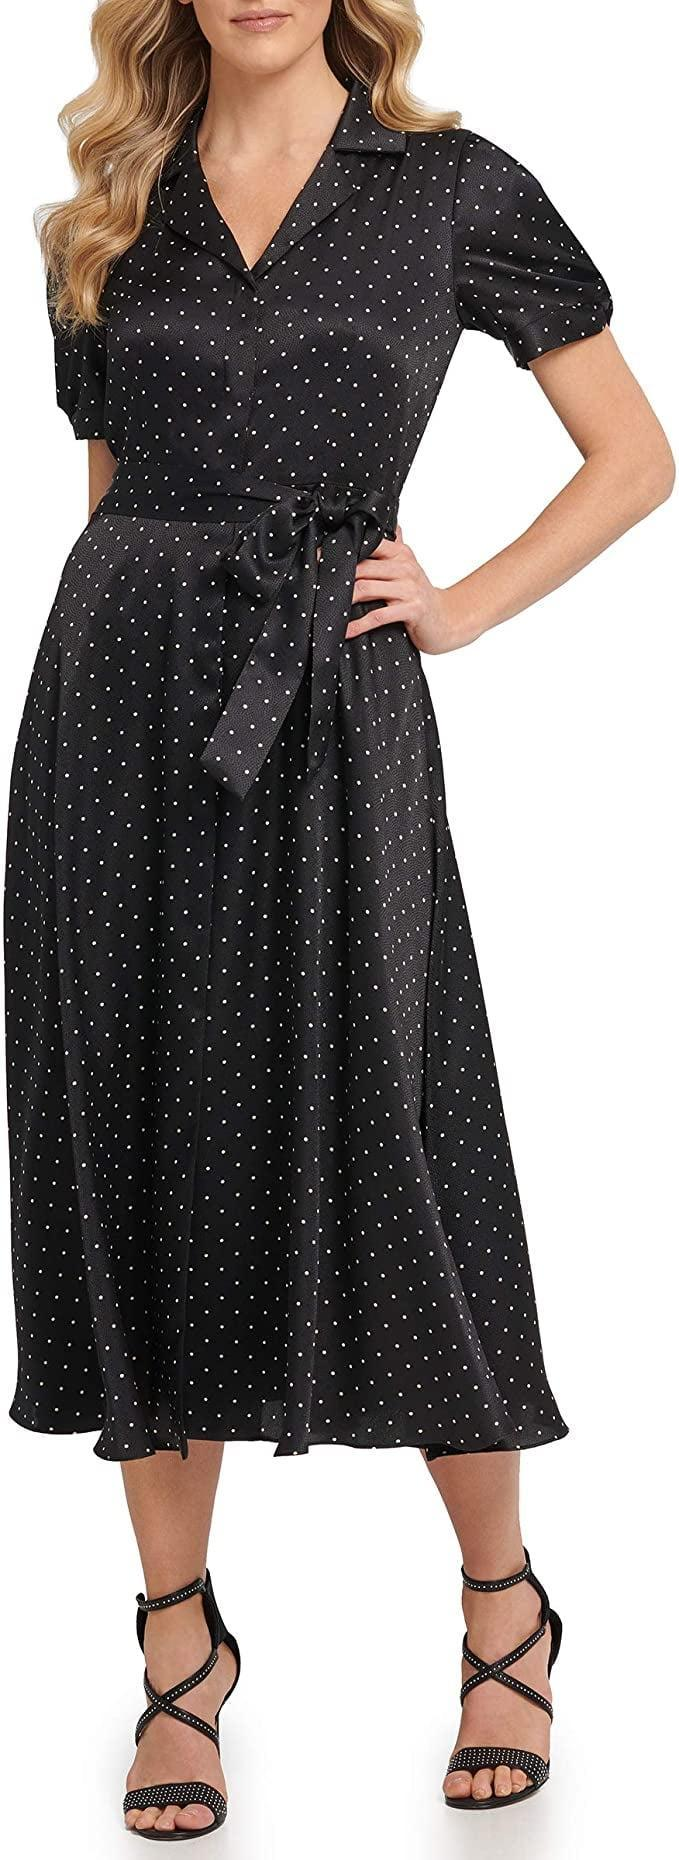 <p>We like that the polka-dot print on this <span>DKNY Knot Sleeve Midi Shirt Dress</span> ($59-$78) is very subtle, giving it an understated elegance. The sheen material also makes it look polished for a fancy event.</p>